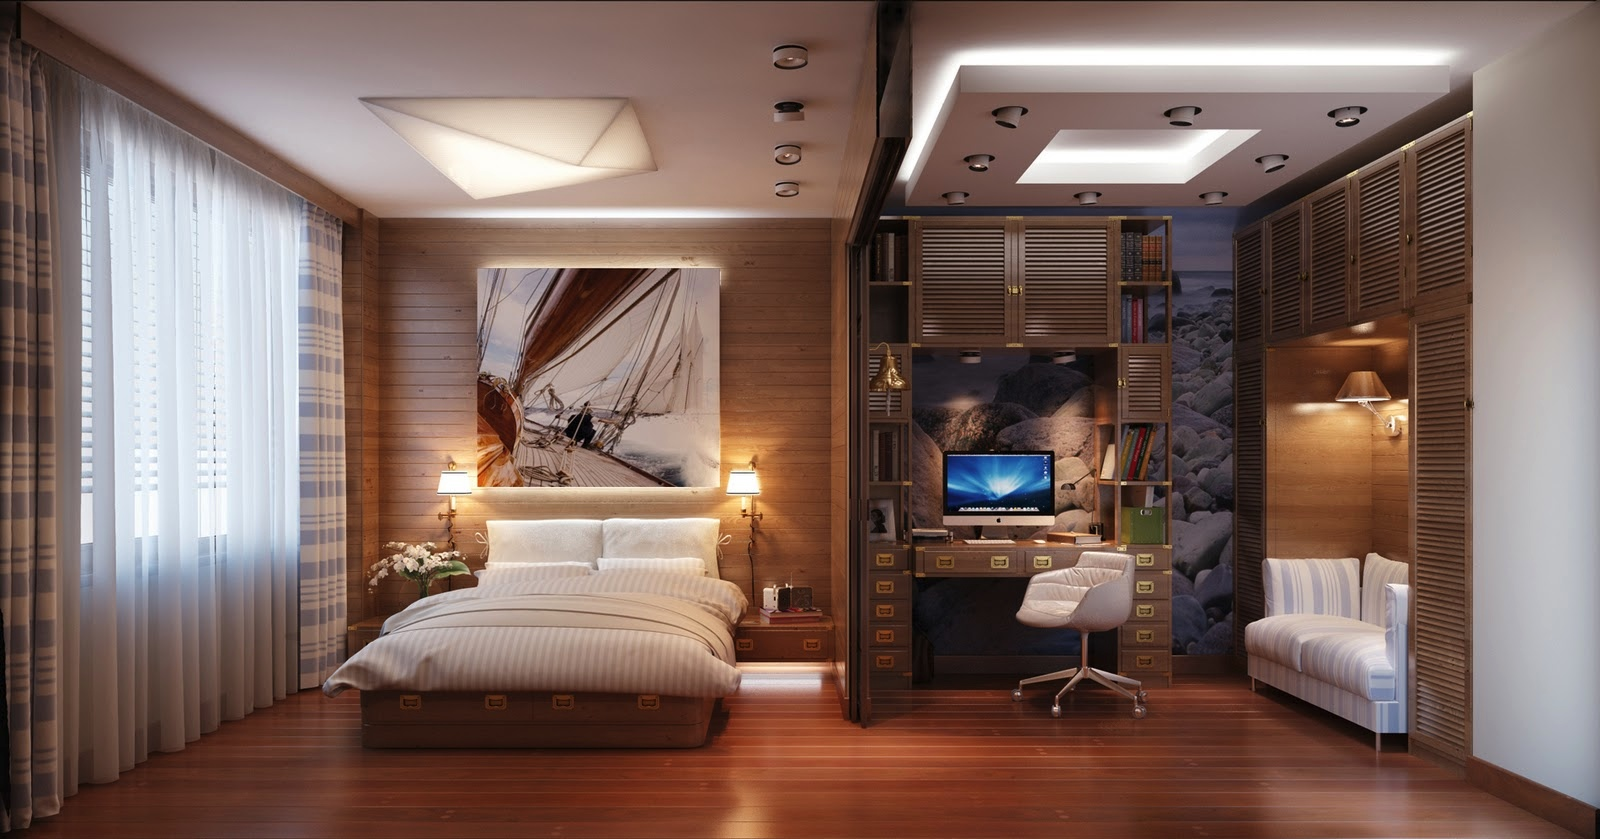 Find and save ideas about Bedroom office combo on Pinterest. | See more ideas about Bedroom with office, Small spare room office ideas and Small bedroom office.